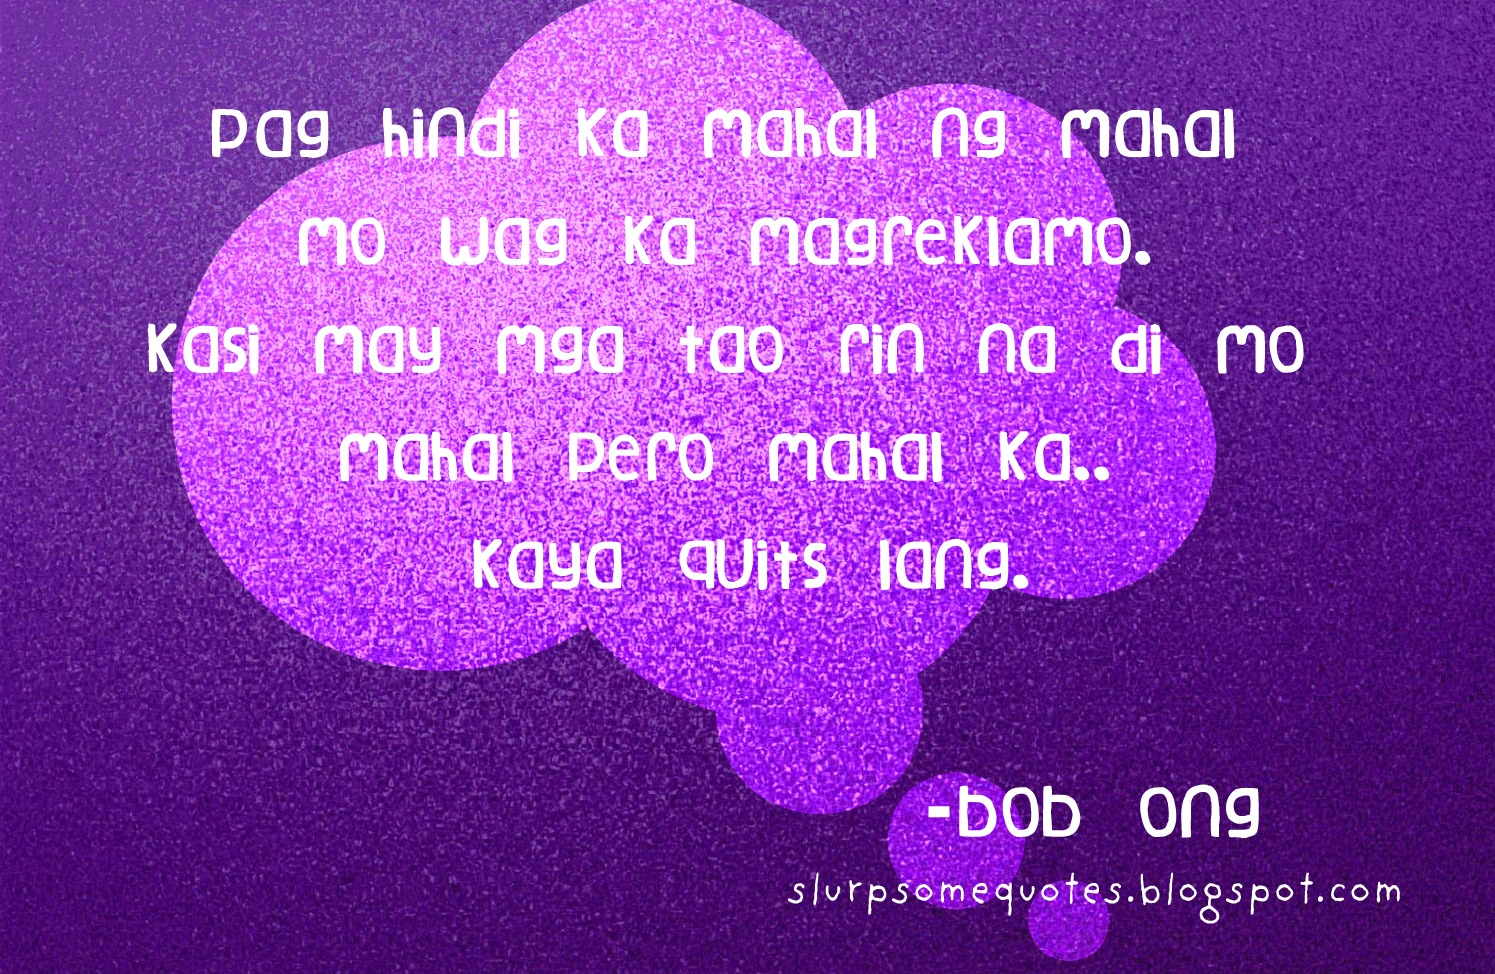 slurp some quotes learn to love with bob ong